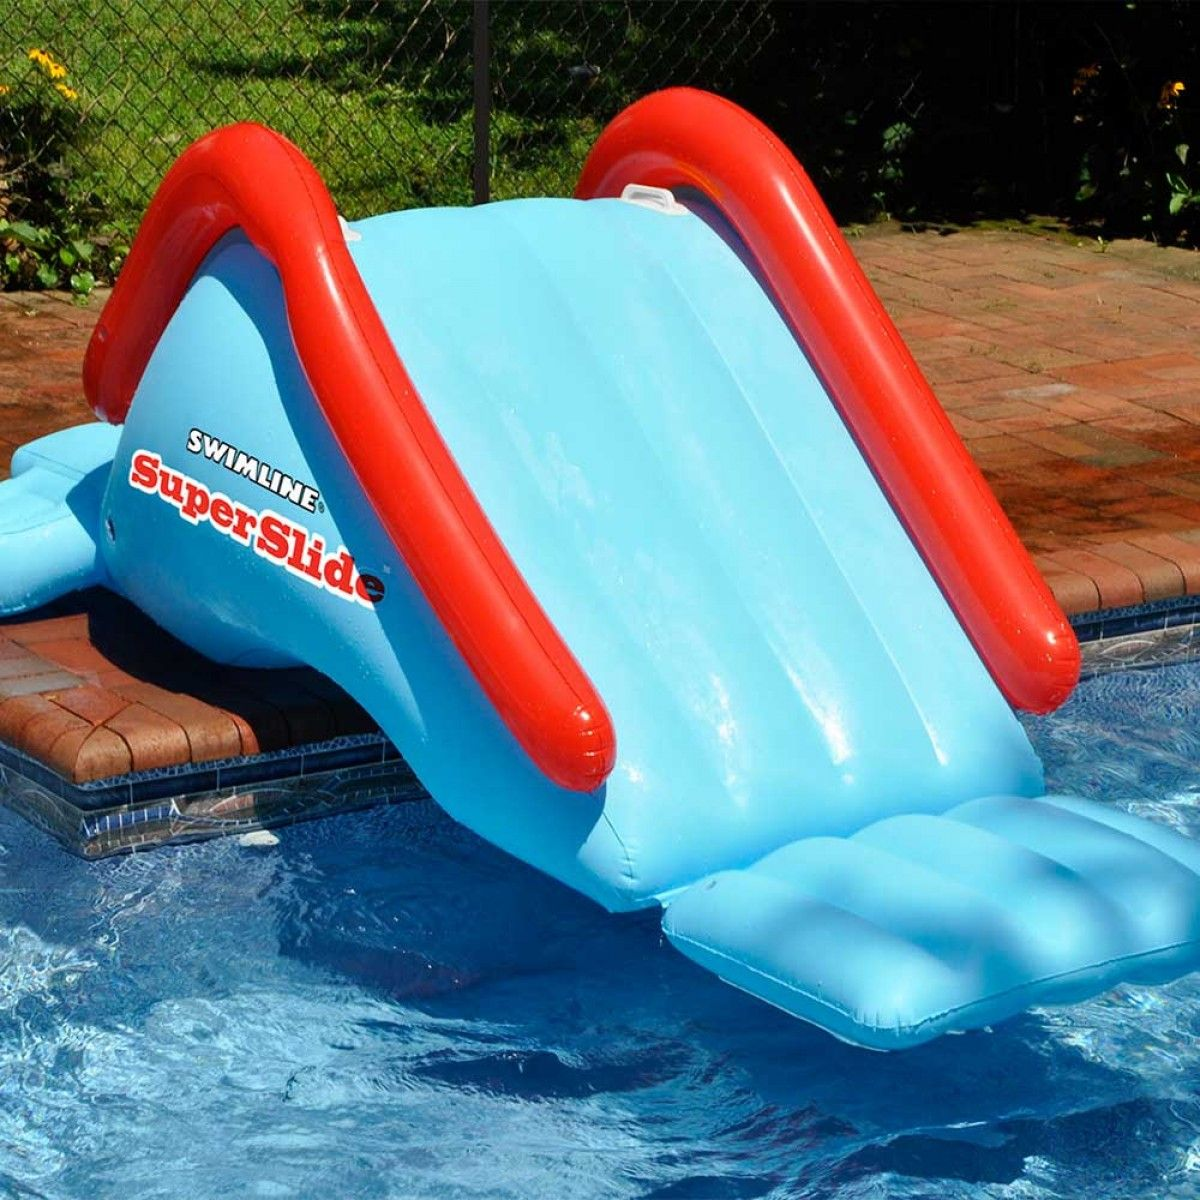 inflatable water chairs for adults outdoor double chaise lounge swimline super slide pool toy gift guide